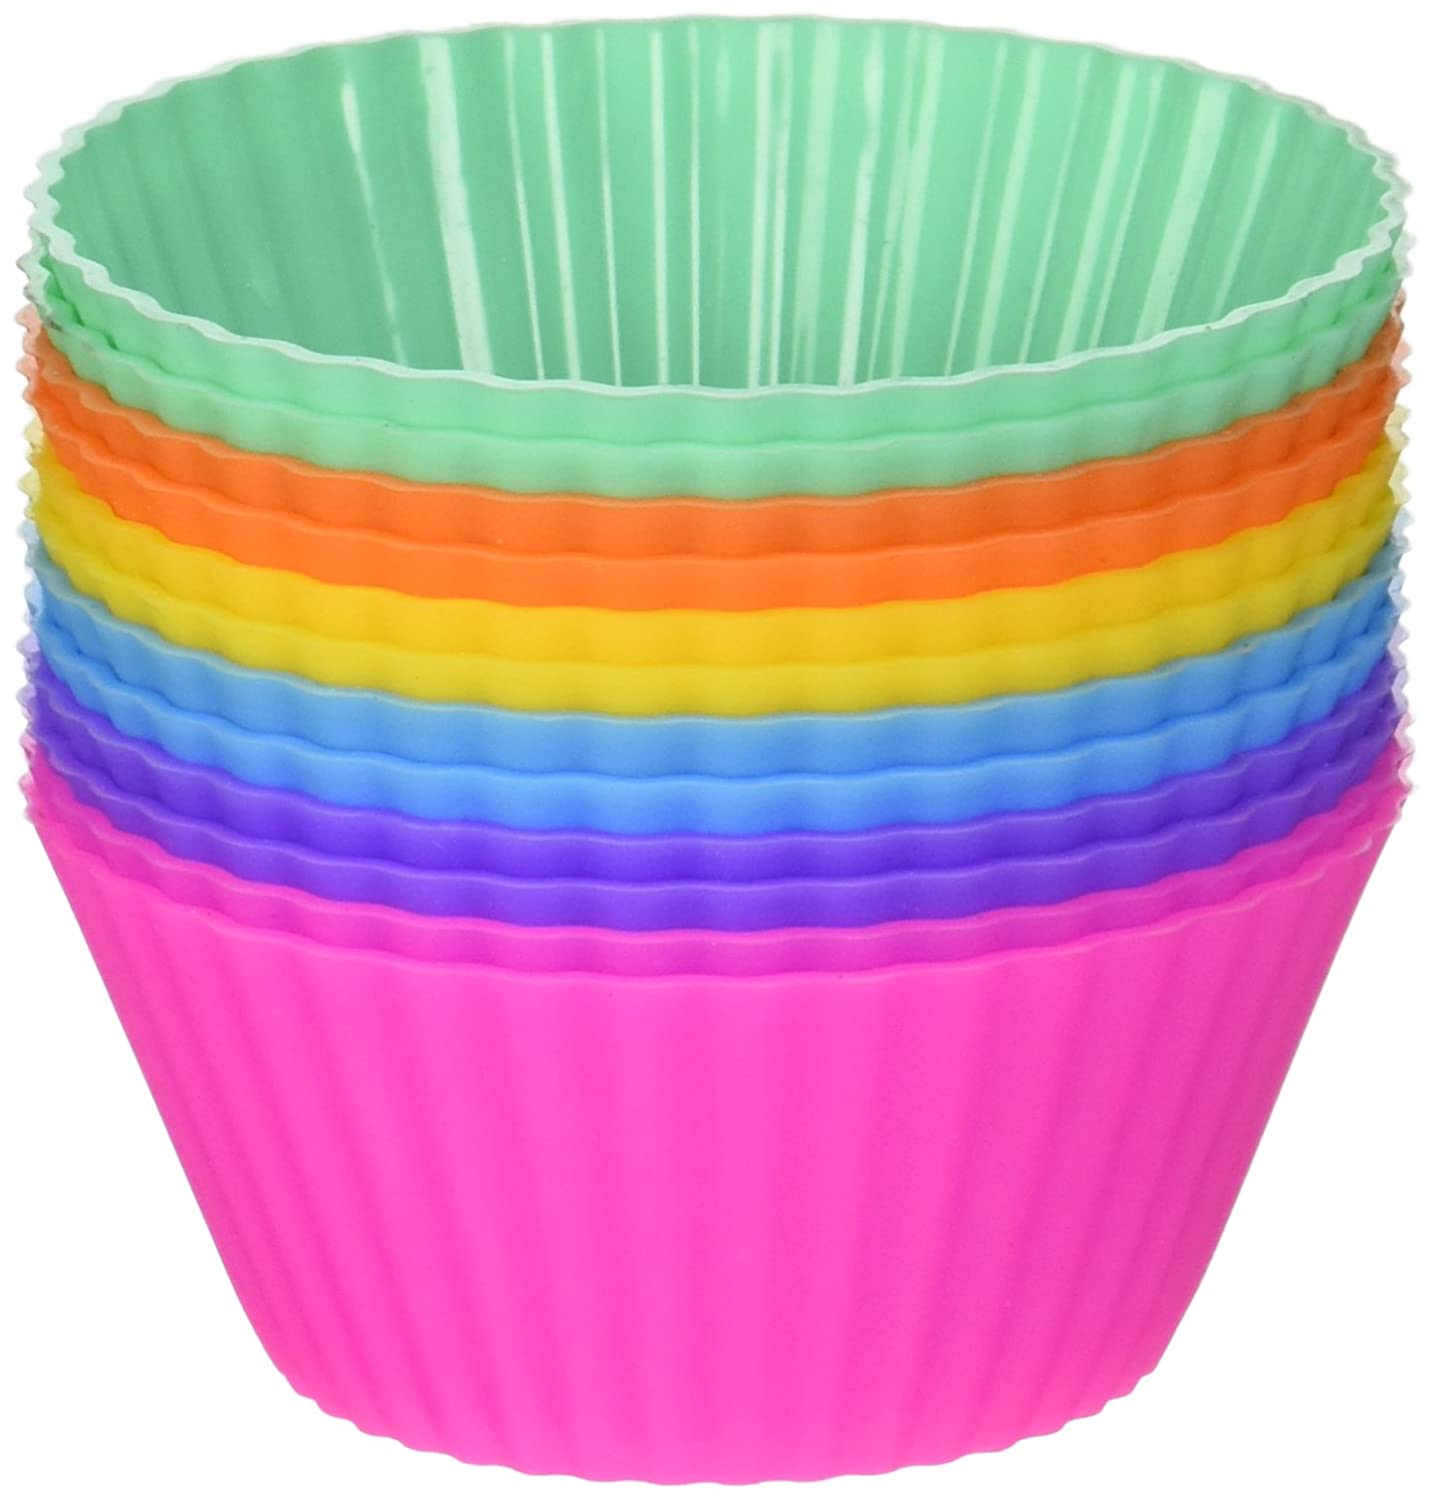 Hulless Reusable Silicone Baking Cups - Set of 12 Nonstick Cupcake Liners in 6 Vibrant Colors UBRSLKBC12P